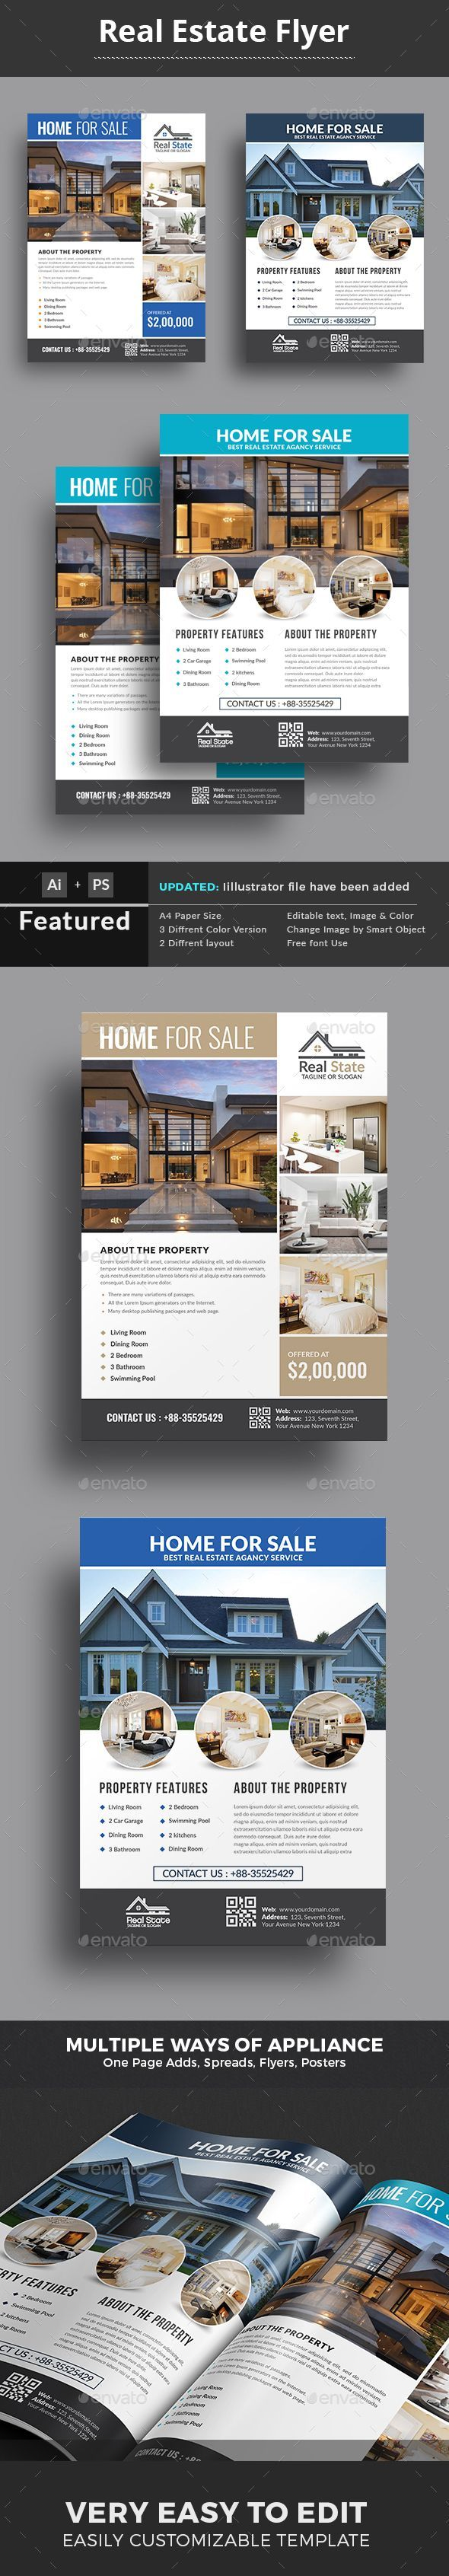 This $Real Estate $Flyer Template is a great tool for promoting your ...